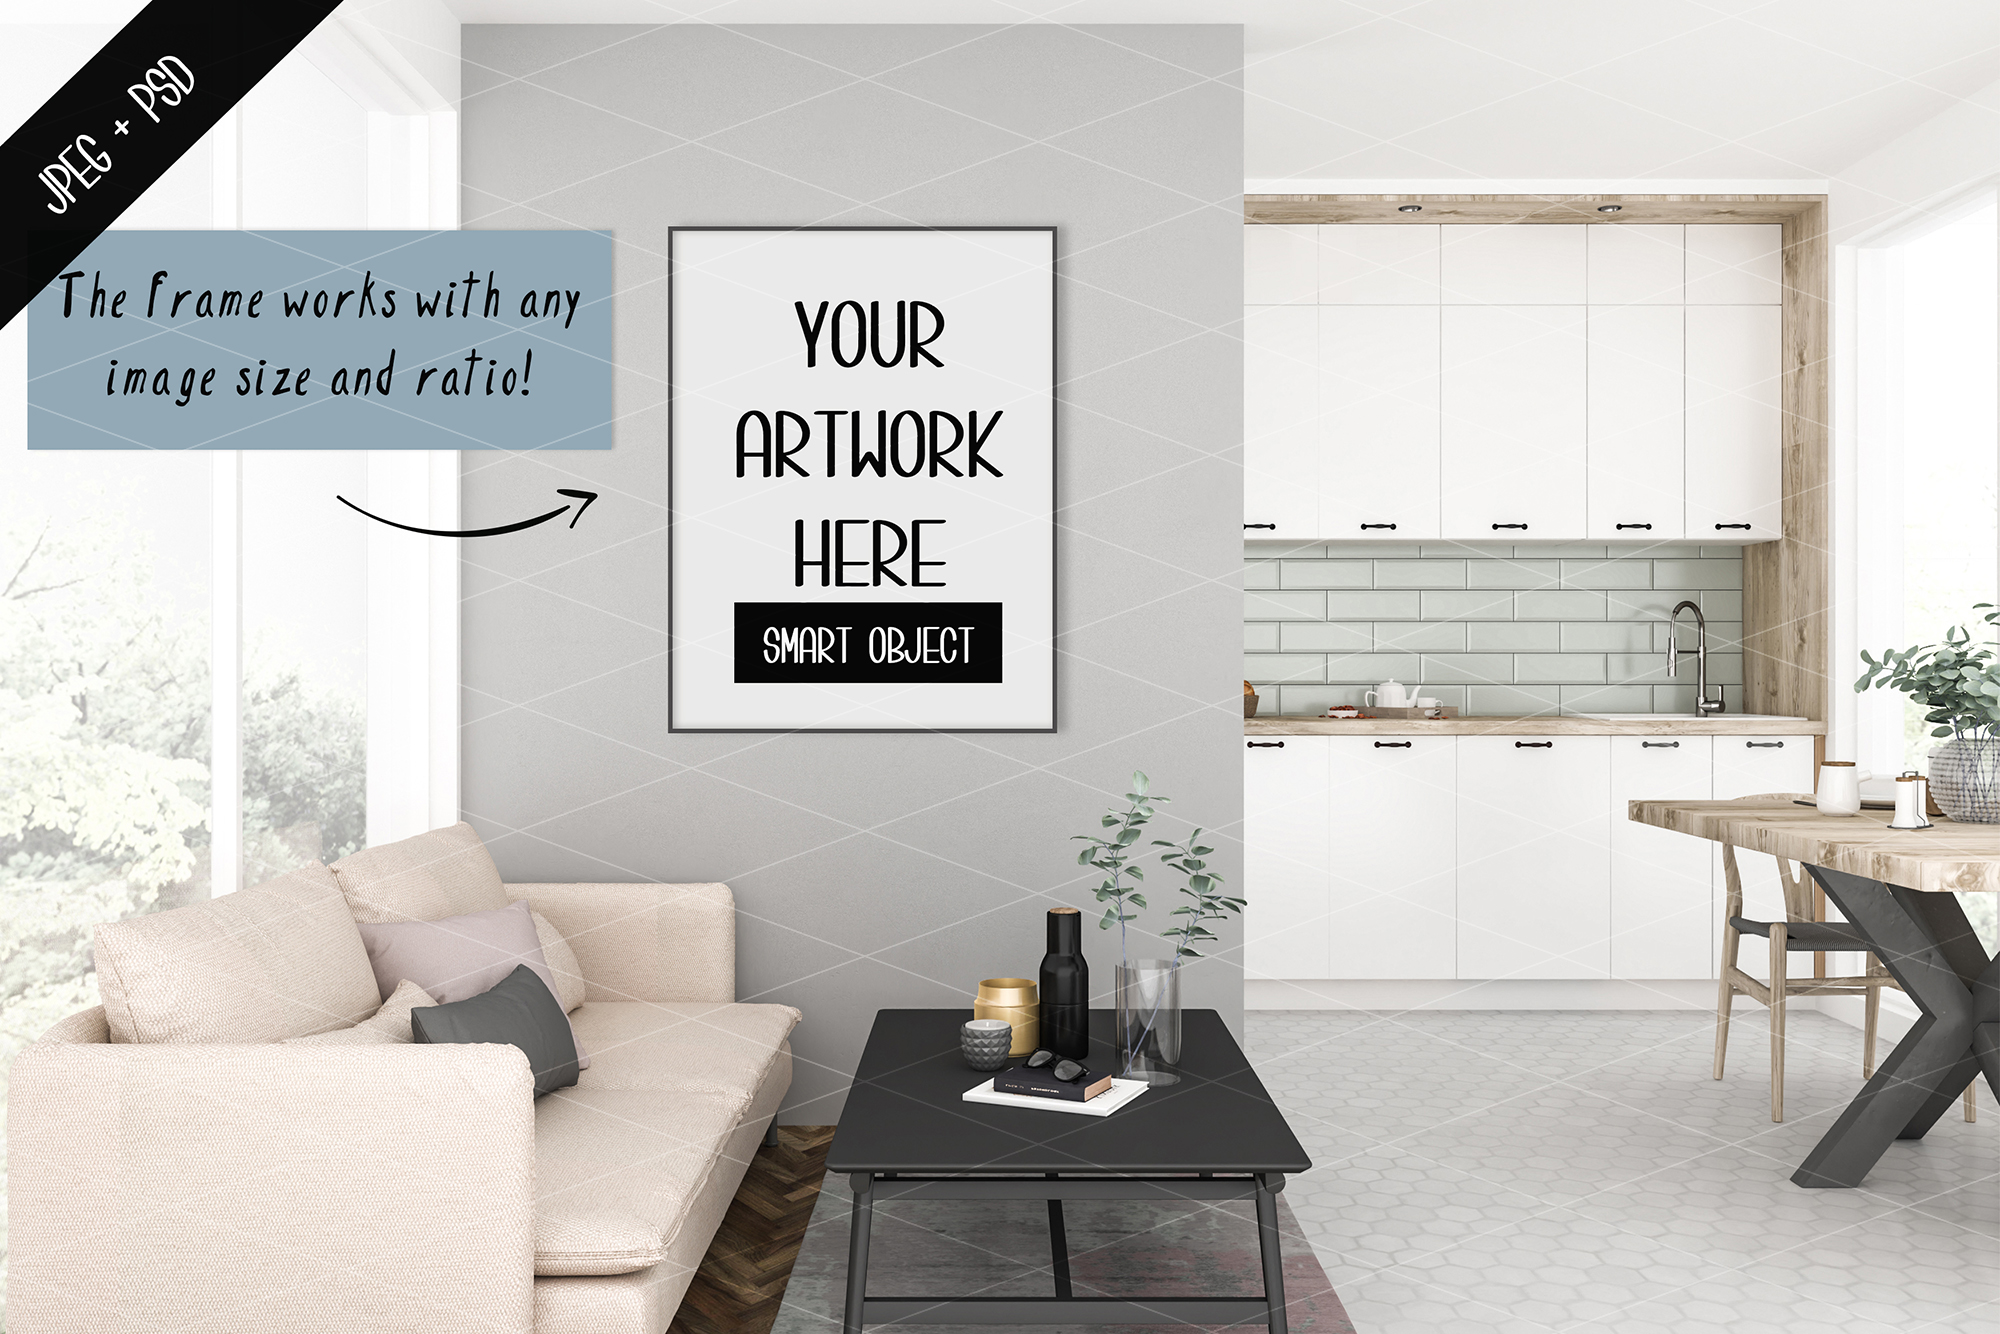 Frame mockup creator - All image size - Interior mockup example image 2